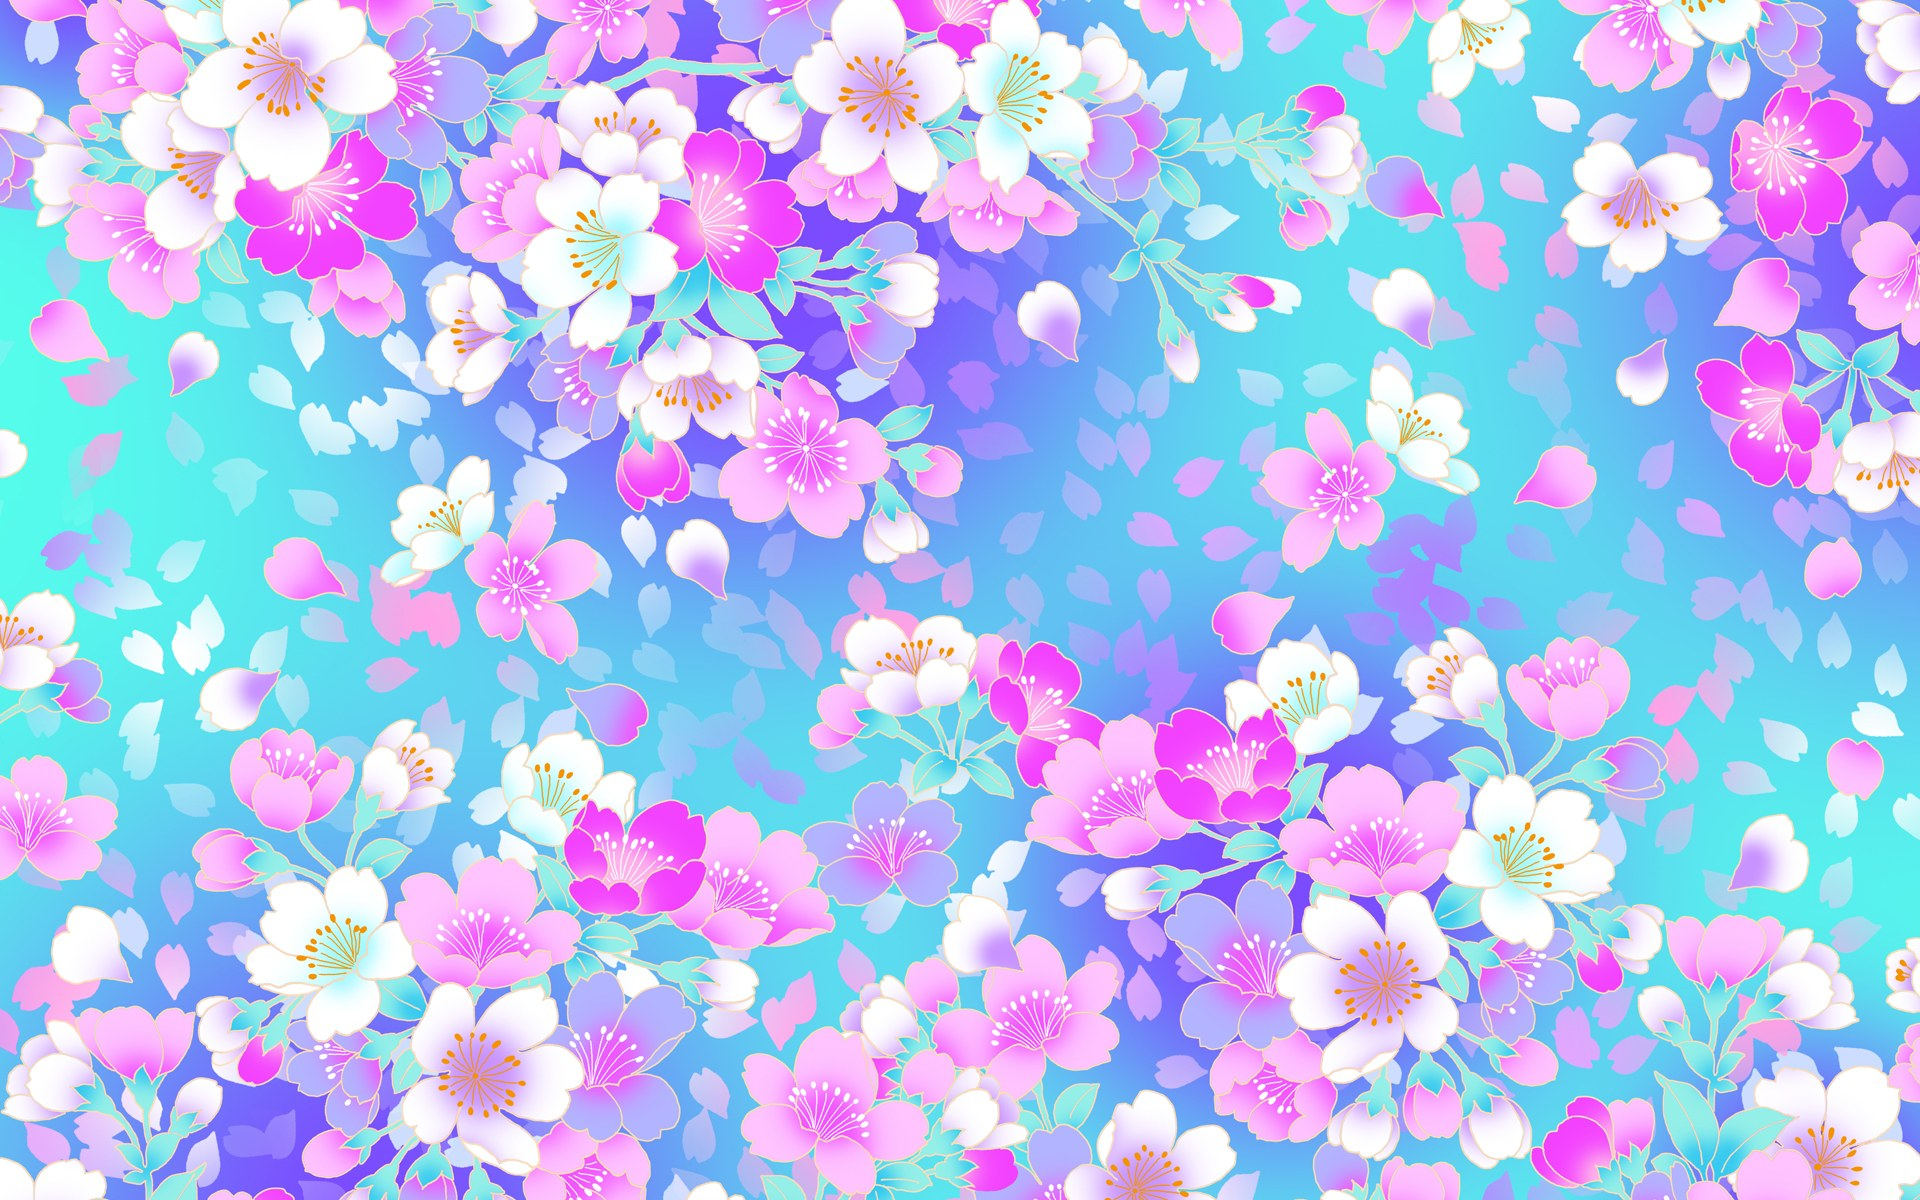 Cute flower pattern tumblr - photo#15